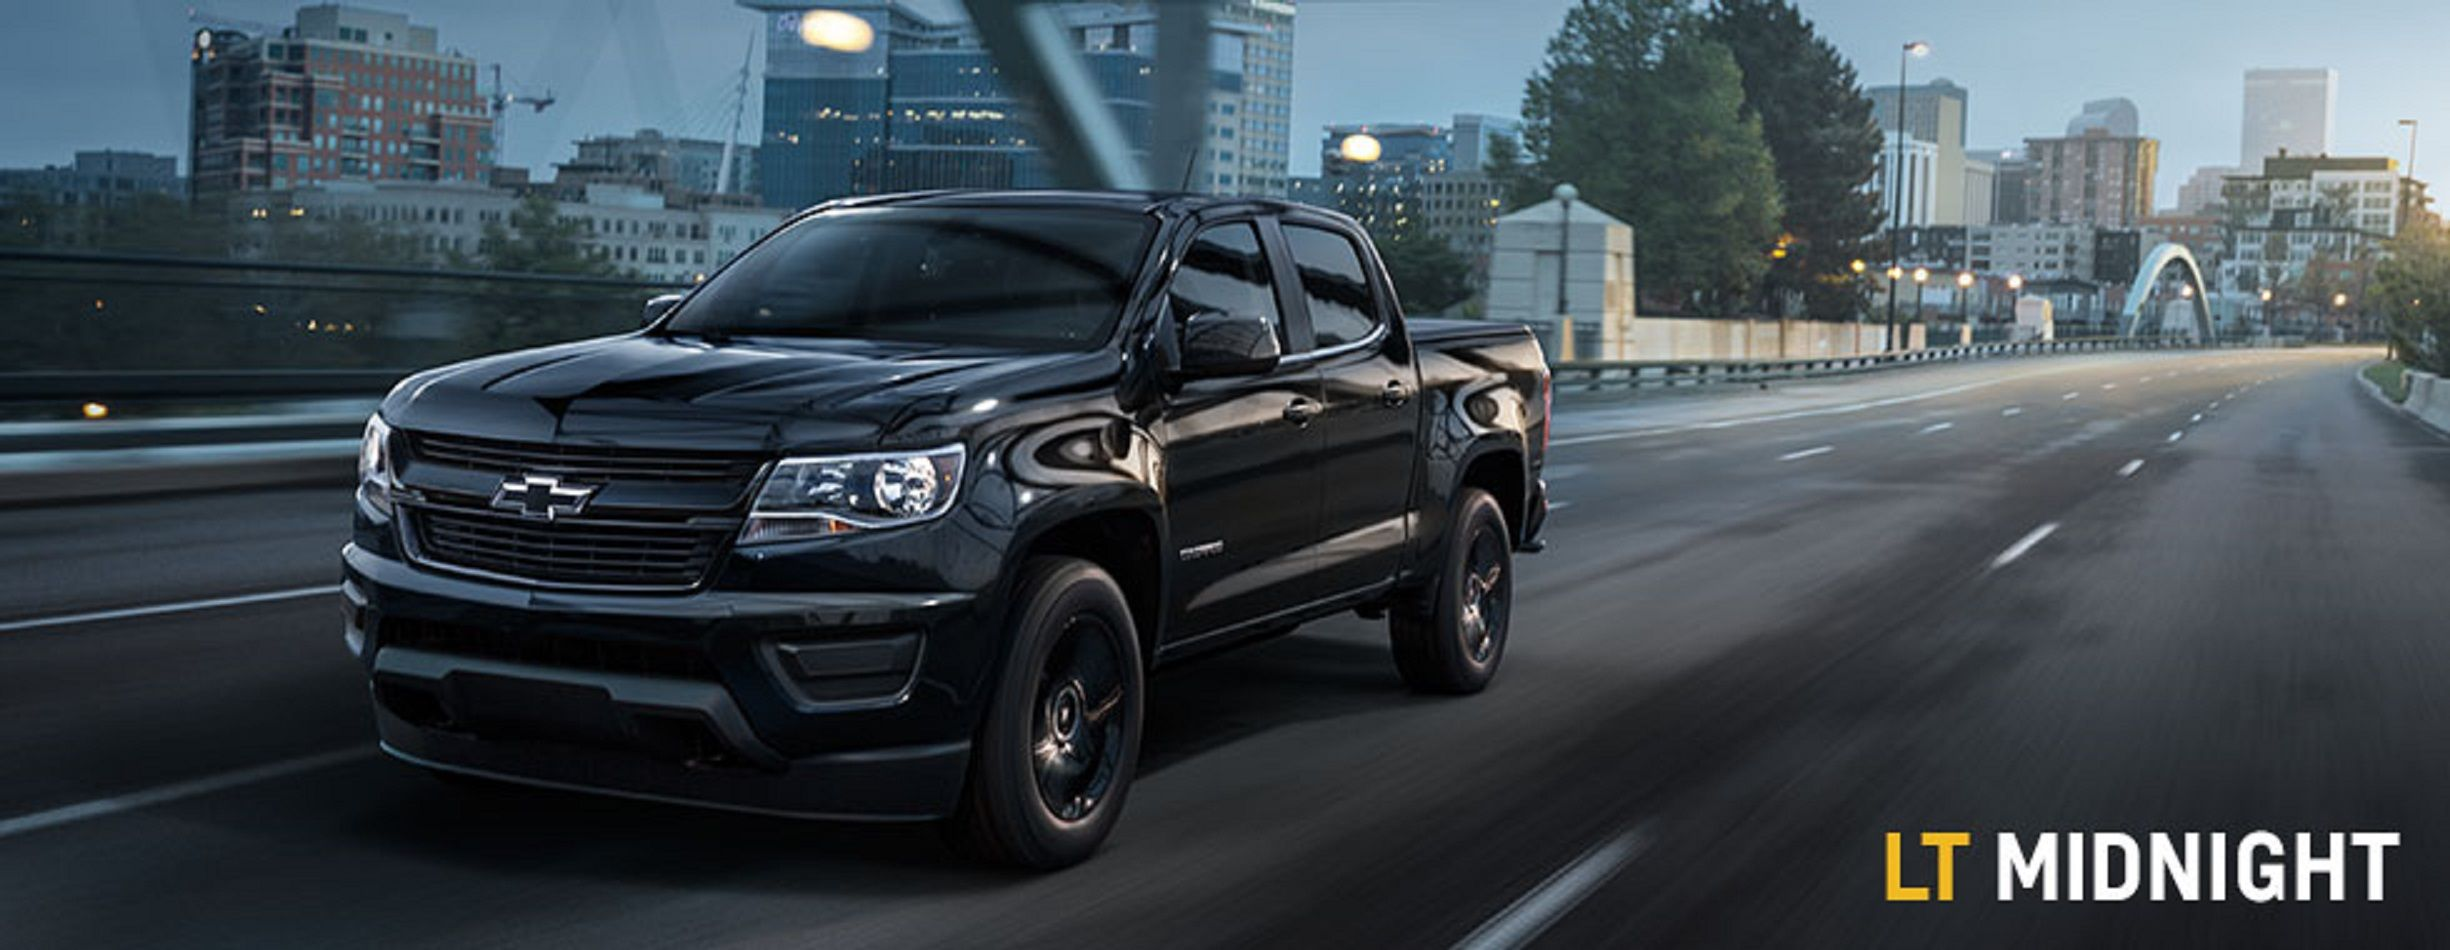 Chevy announces the 2016 chevrolet colorado midnight edition slated to arriv